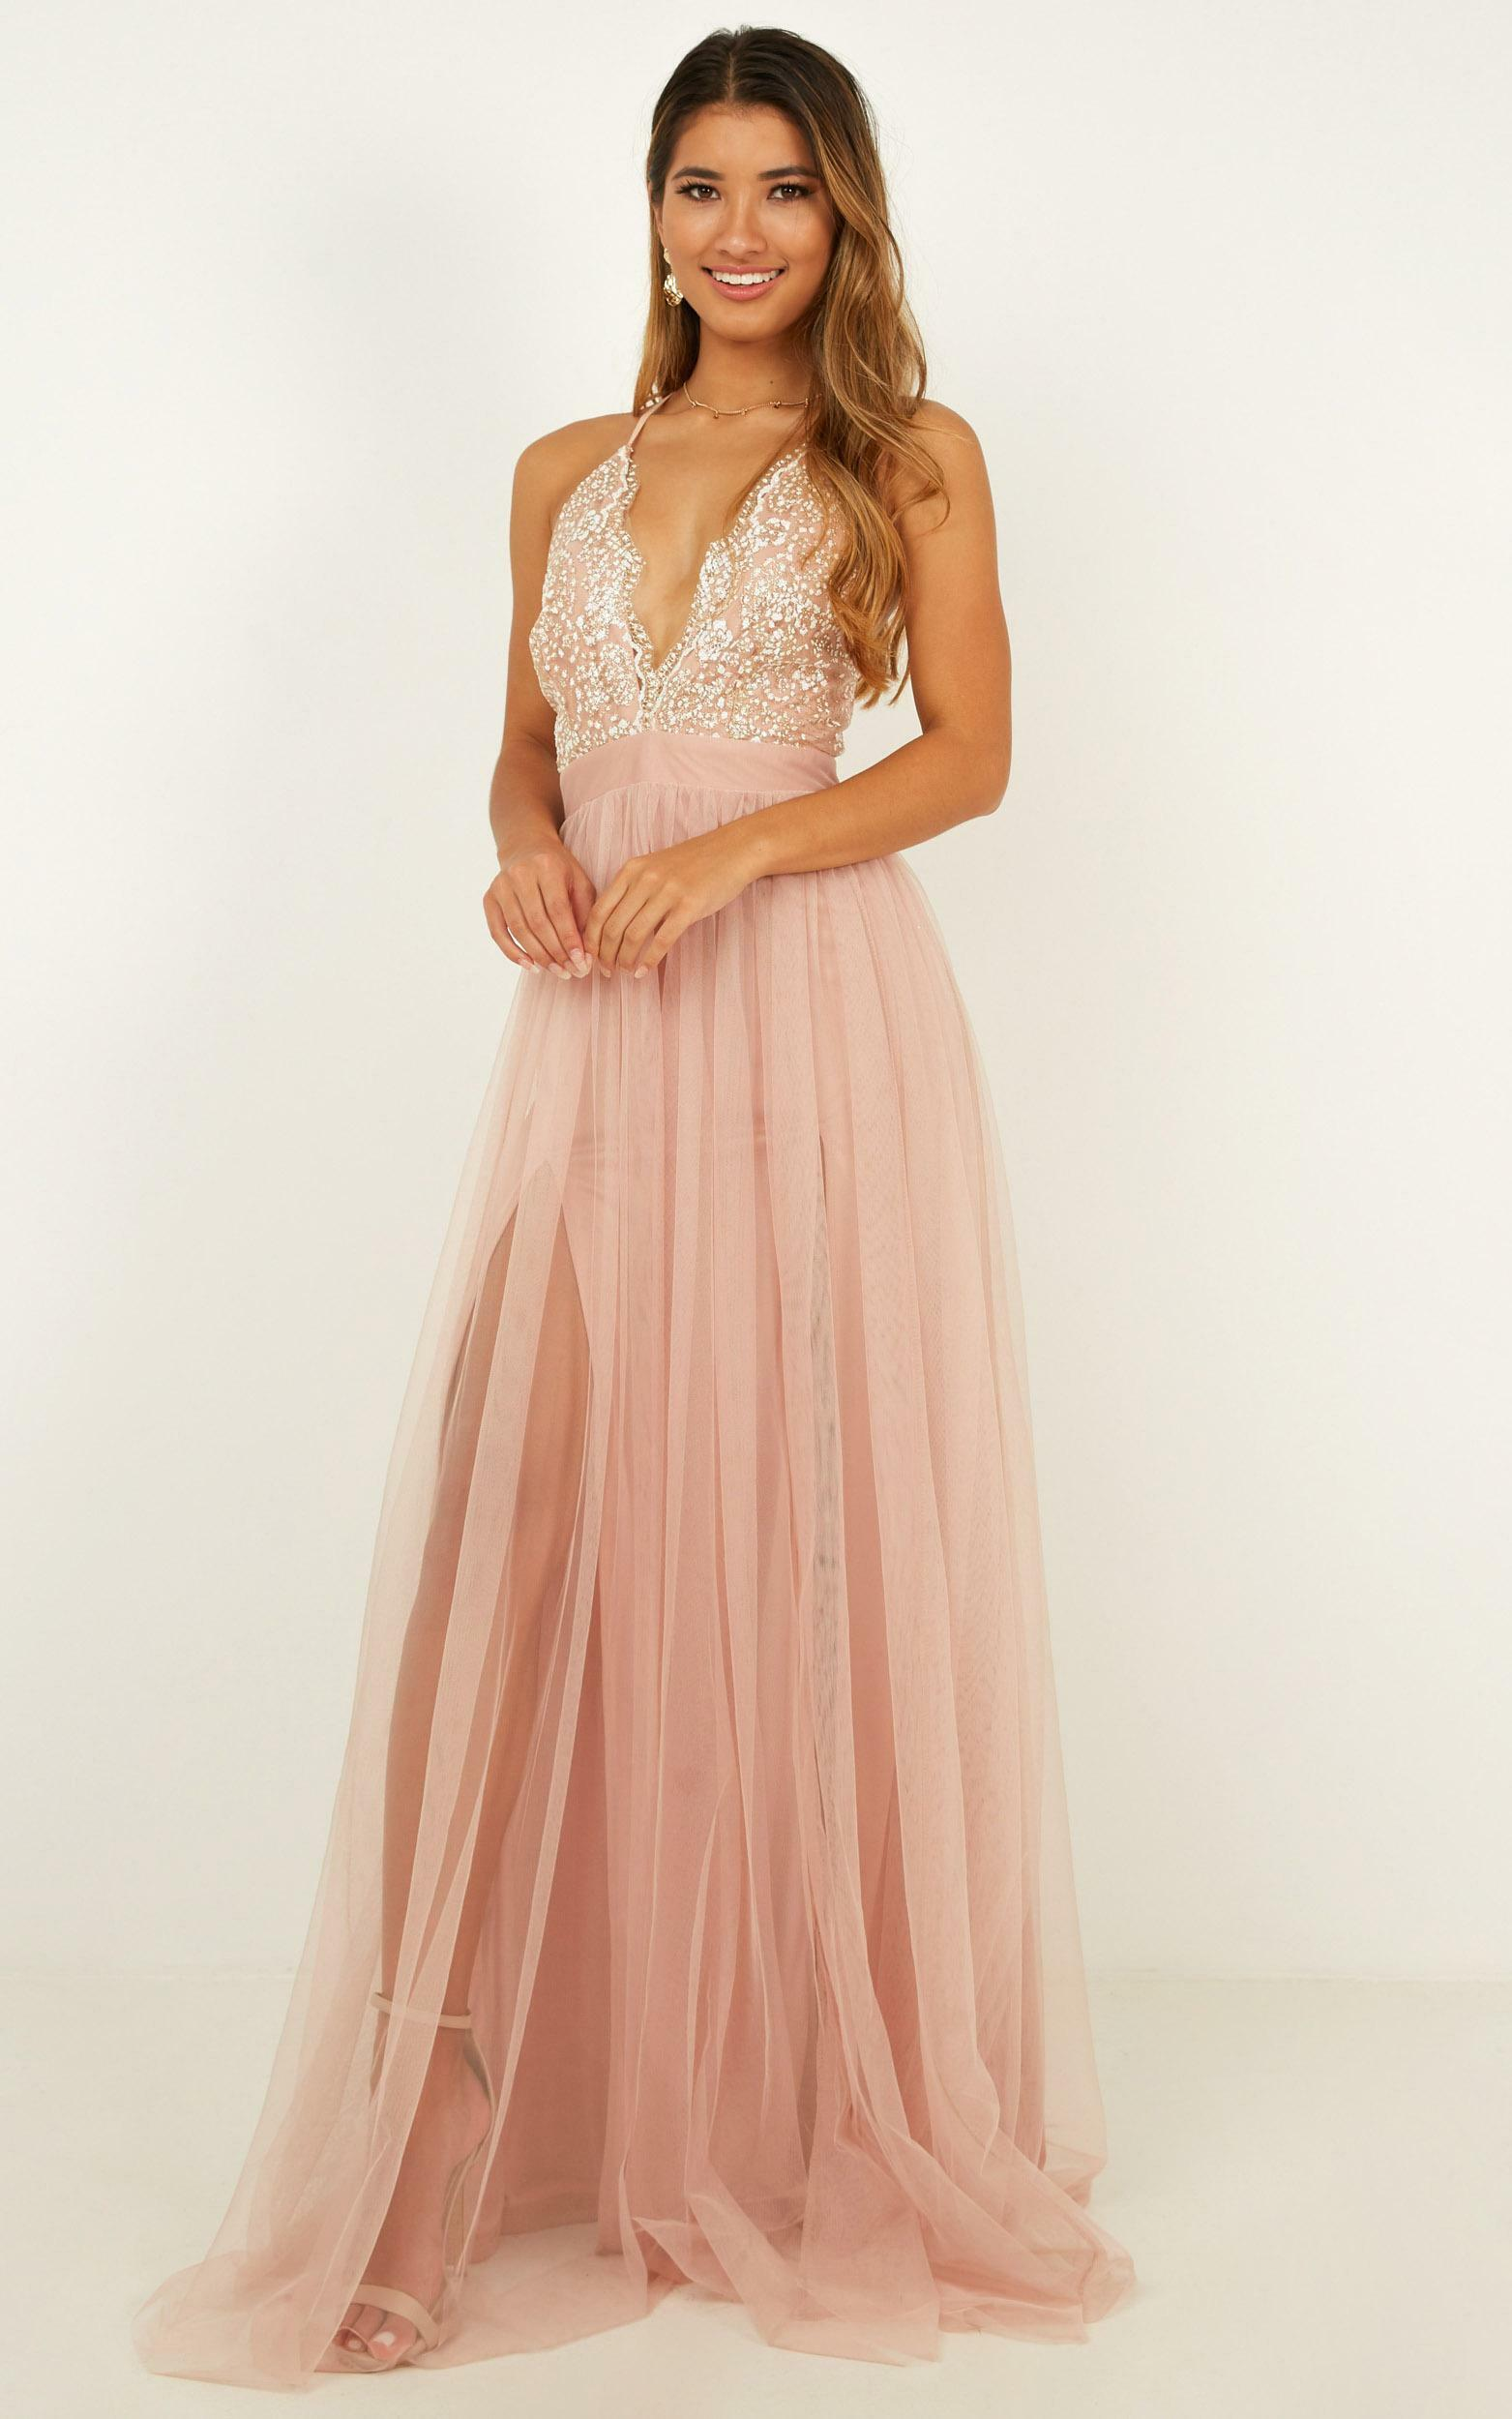 Vision Of Beauty maxi dress in blush glitter - 12 (L), Blush, hi-res image number null